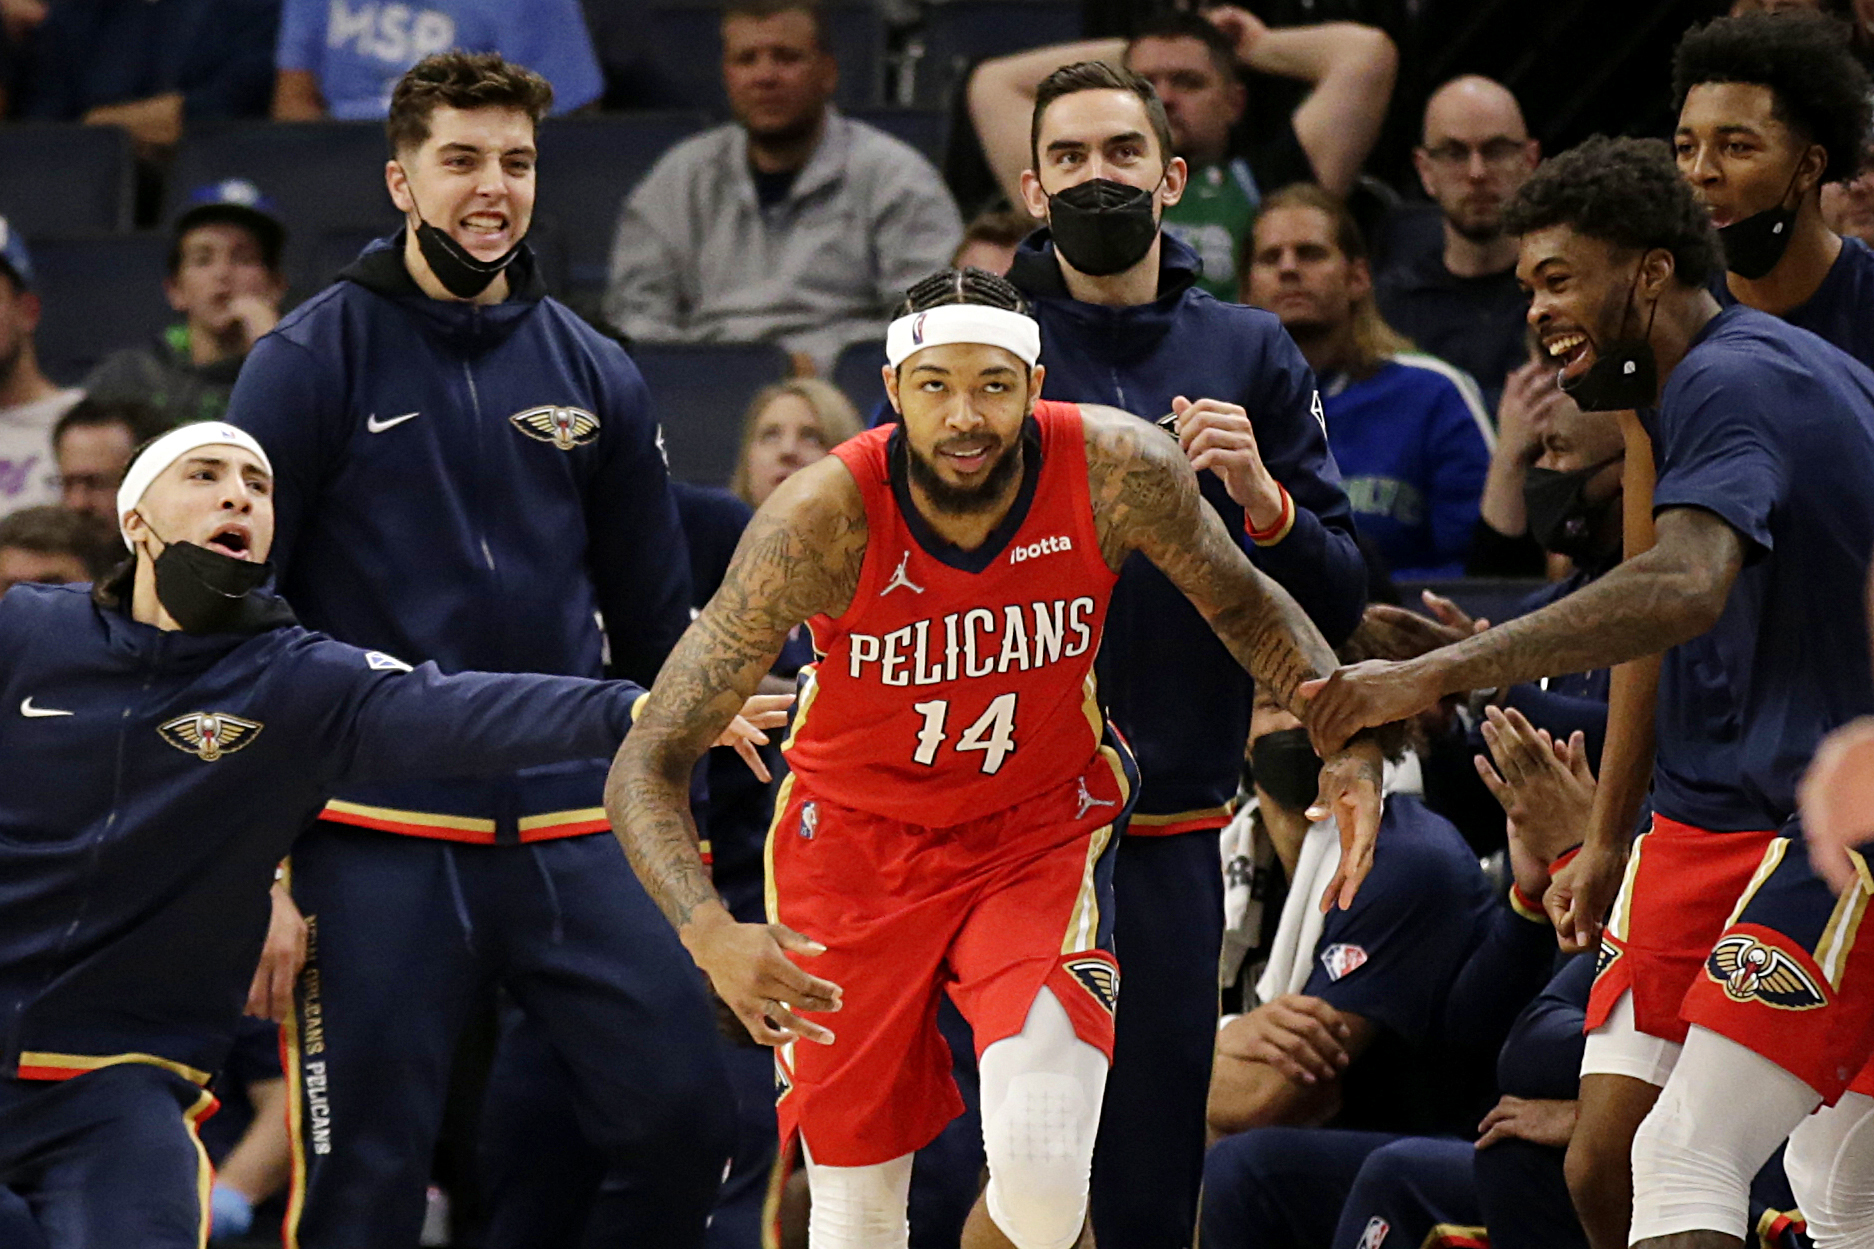 https://wgno.com/sports/pelicans-snap-3-game-skid-with-107-98-win-over-timberwolves/